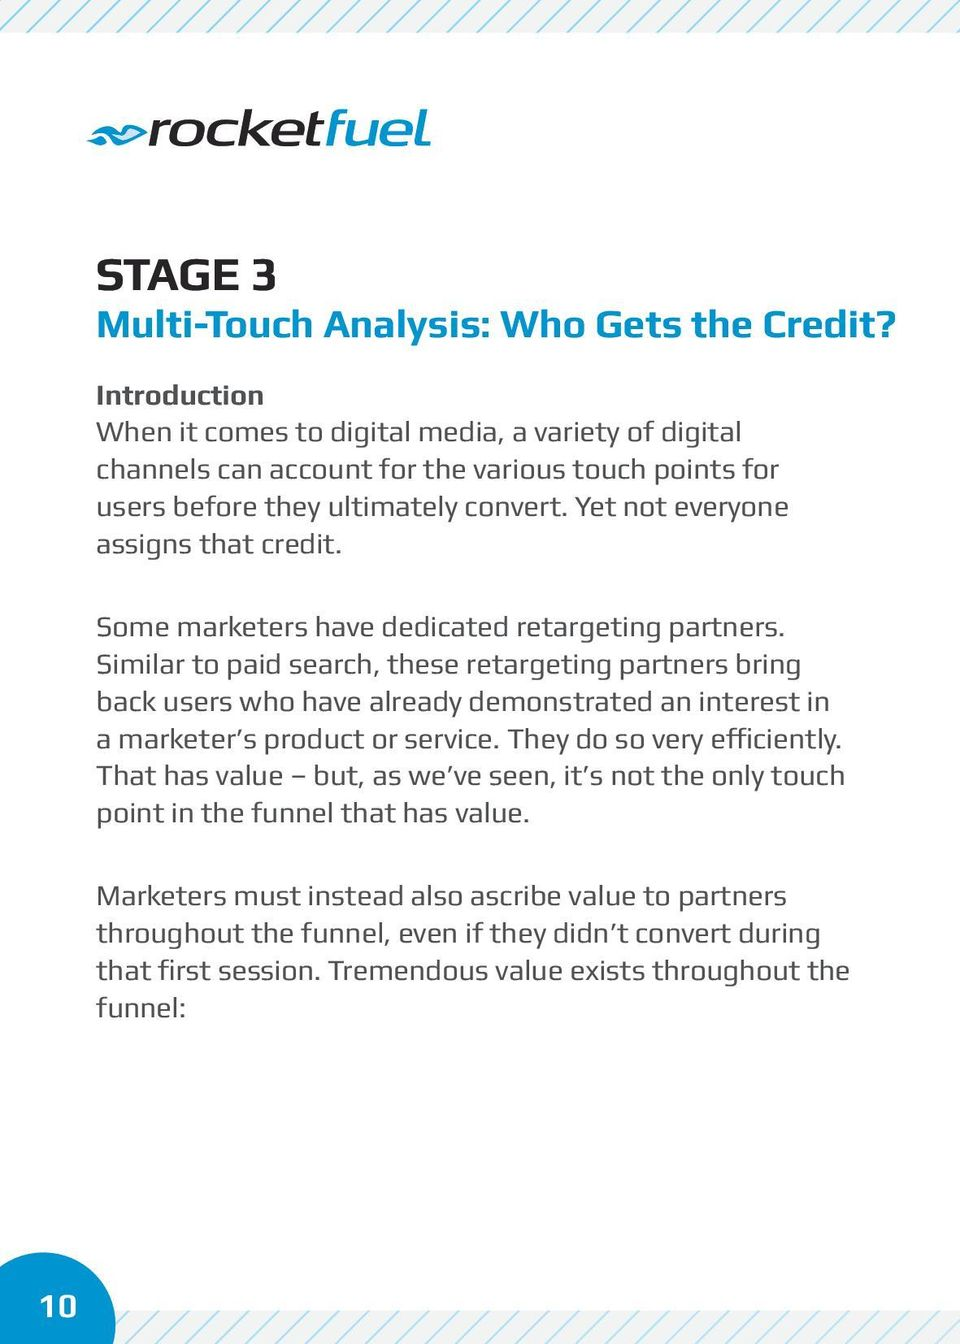 Yet not everyone assigns that credit. Some marketers have dedicated retargeting partners.